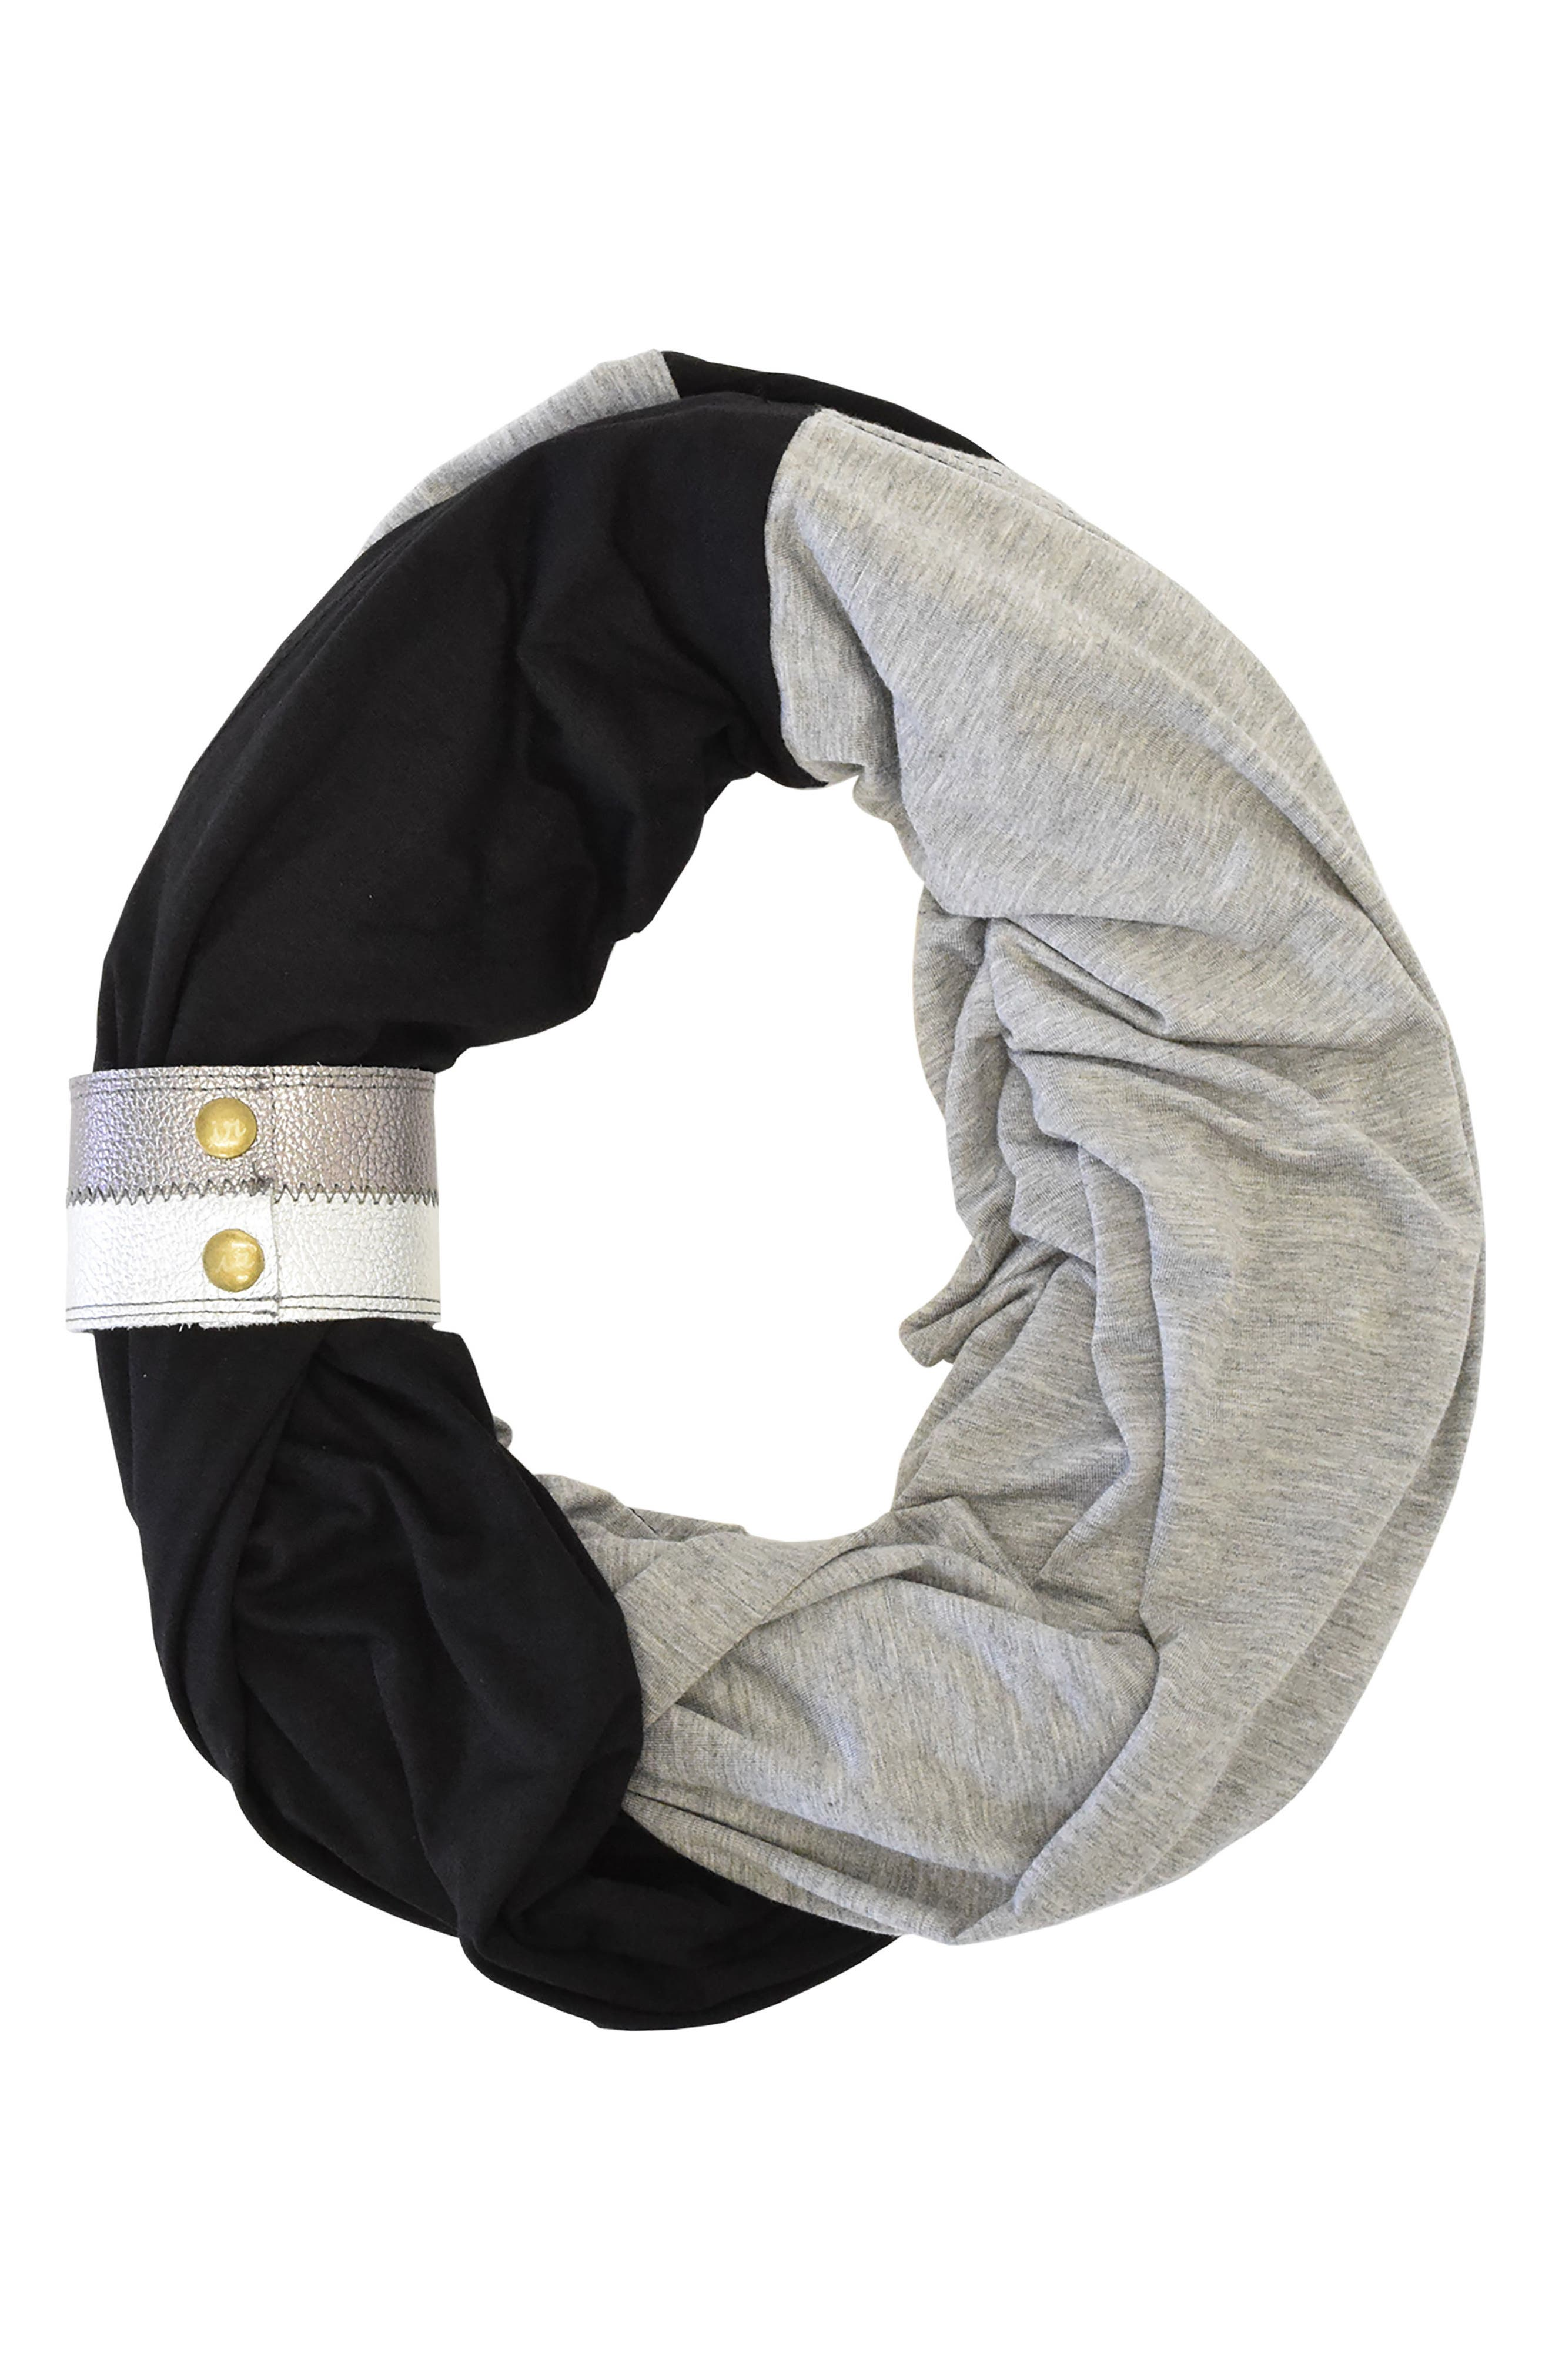 Main Image - Itzy Ritzy Infinity Nursing Scarf with Leather Cuff